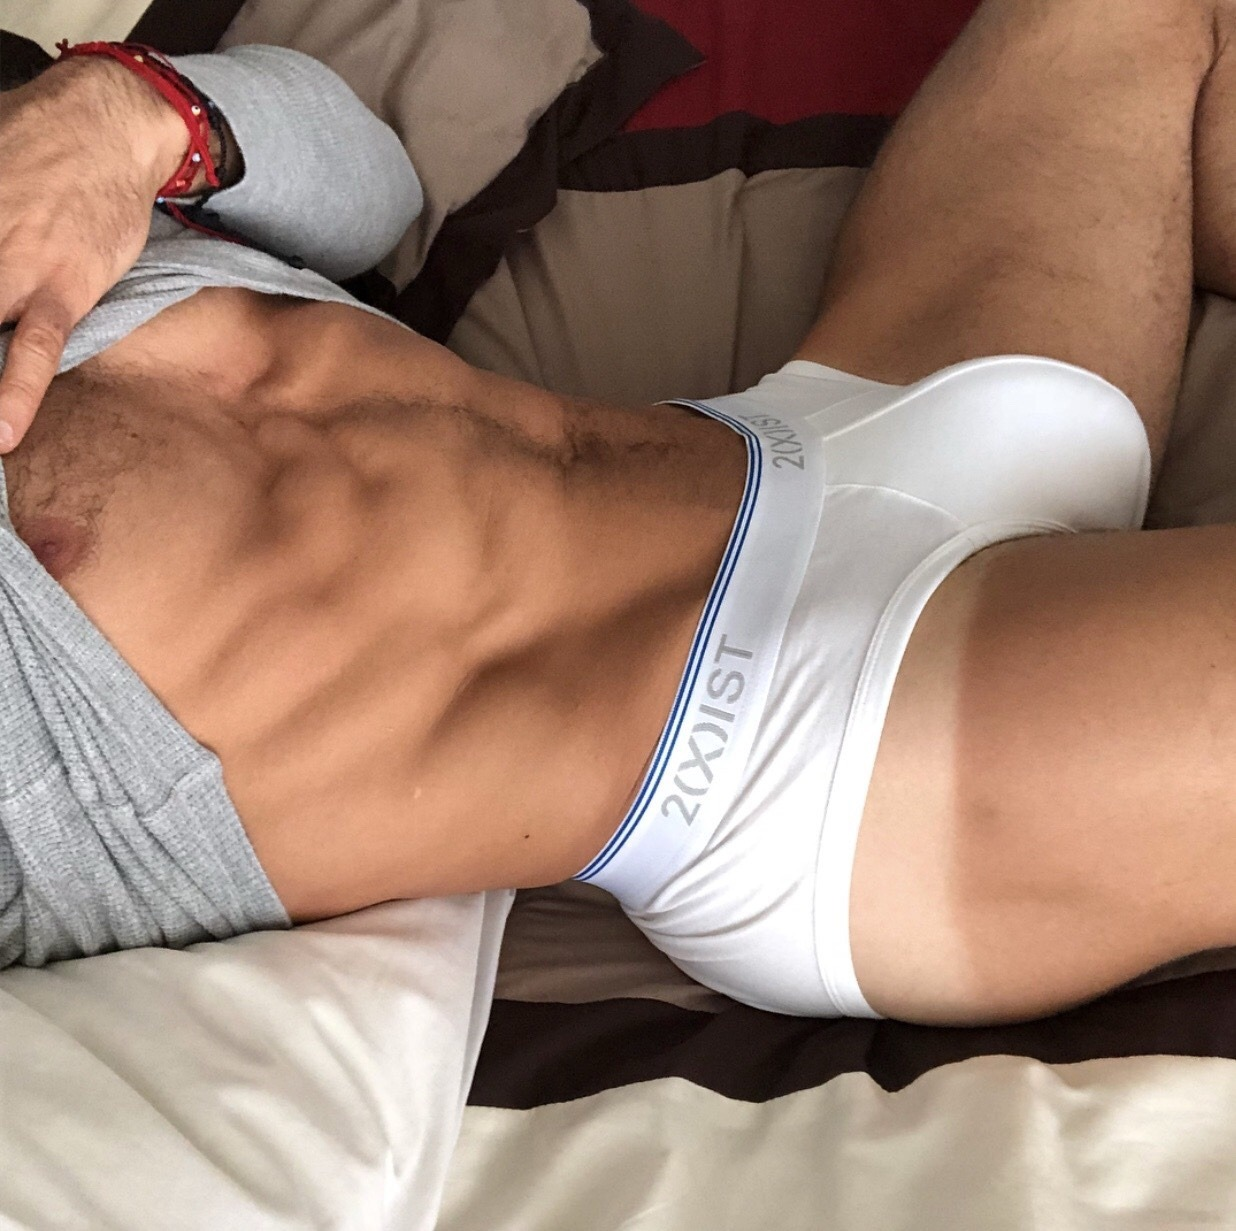 Scotty is lying on his bed in a pair of white briefs rubbing his huge cock through the fabric